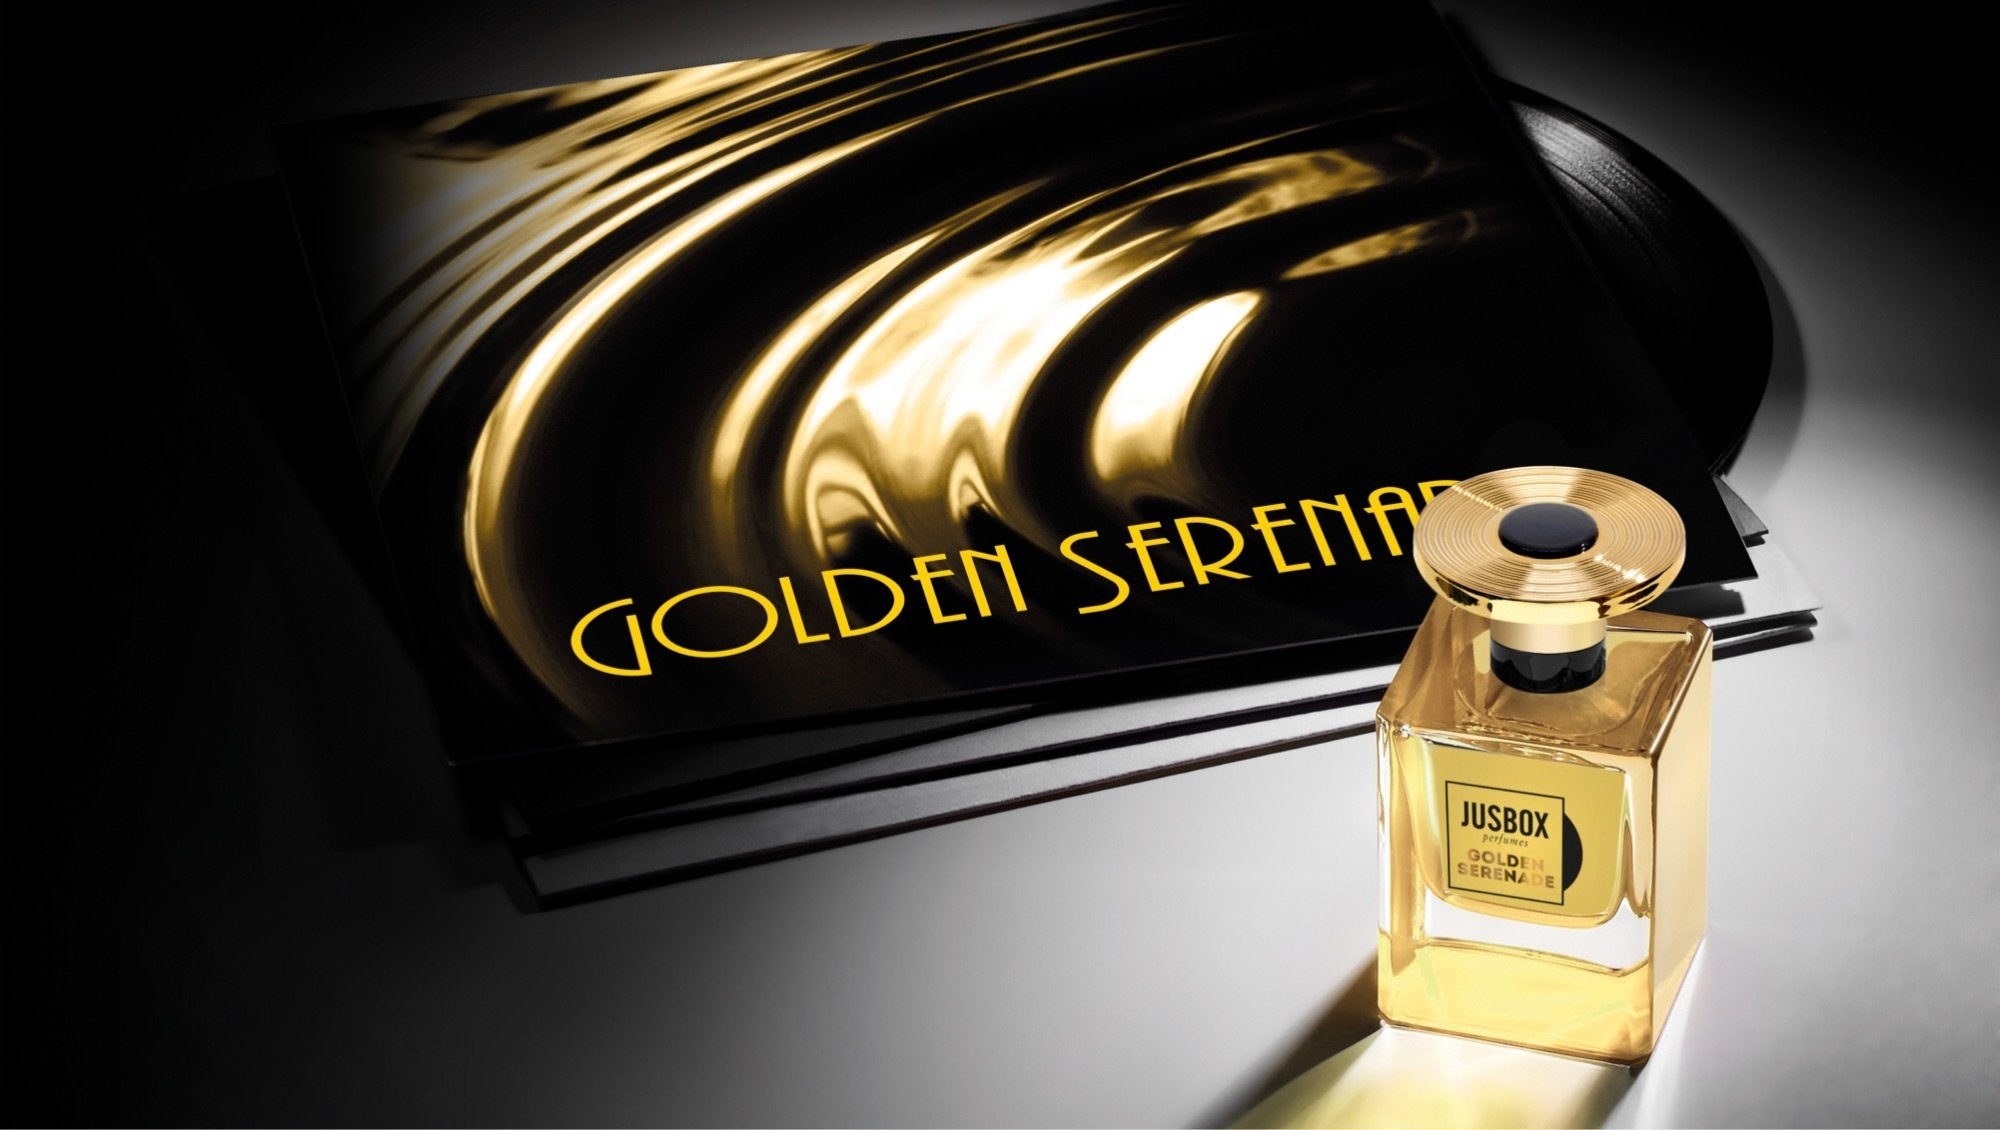 Banner Golden Serenade